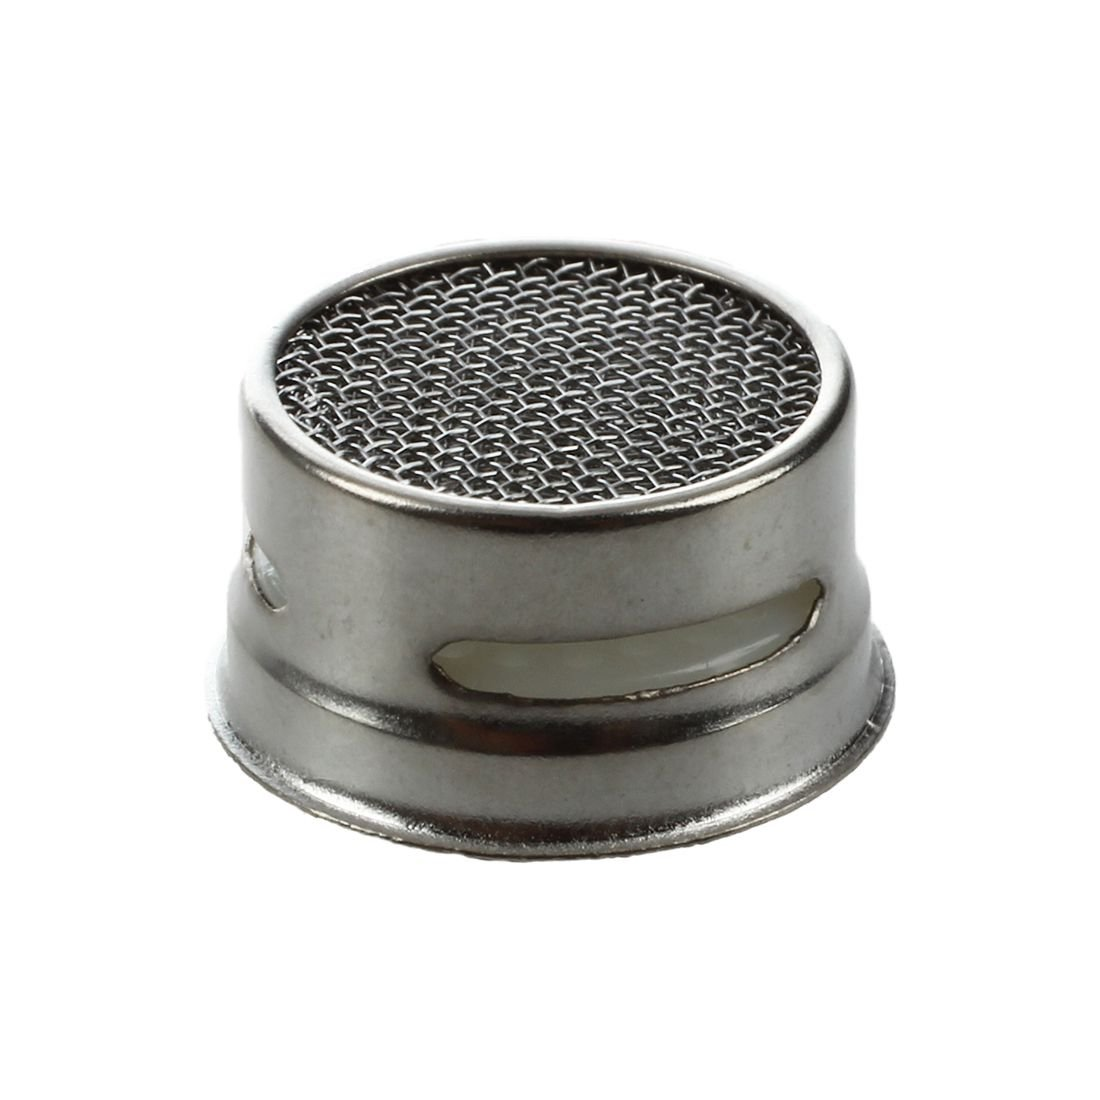 SODIAL(R) Kitchen/Bathroom Faucet Sprayer Strainer Tap Filter---White and Silver by SODIAL(R) (Image #8)